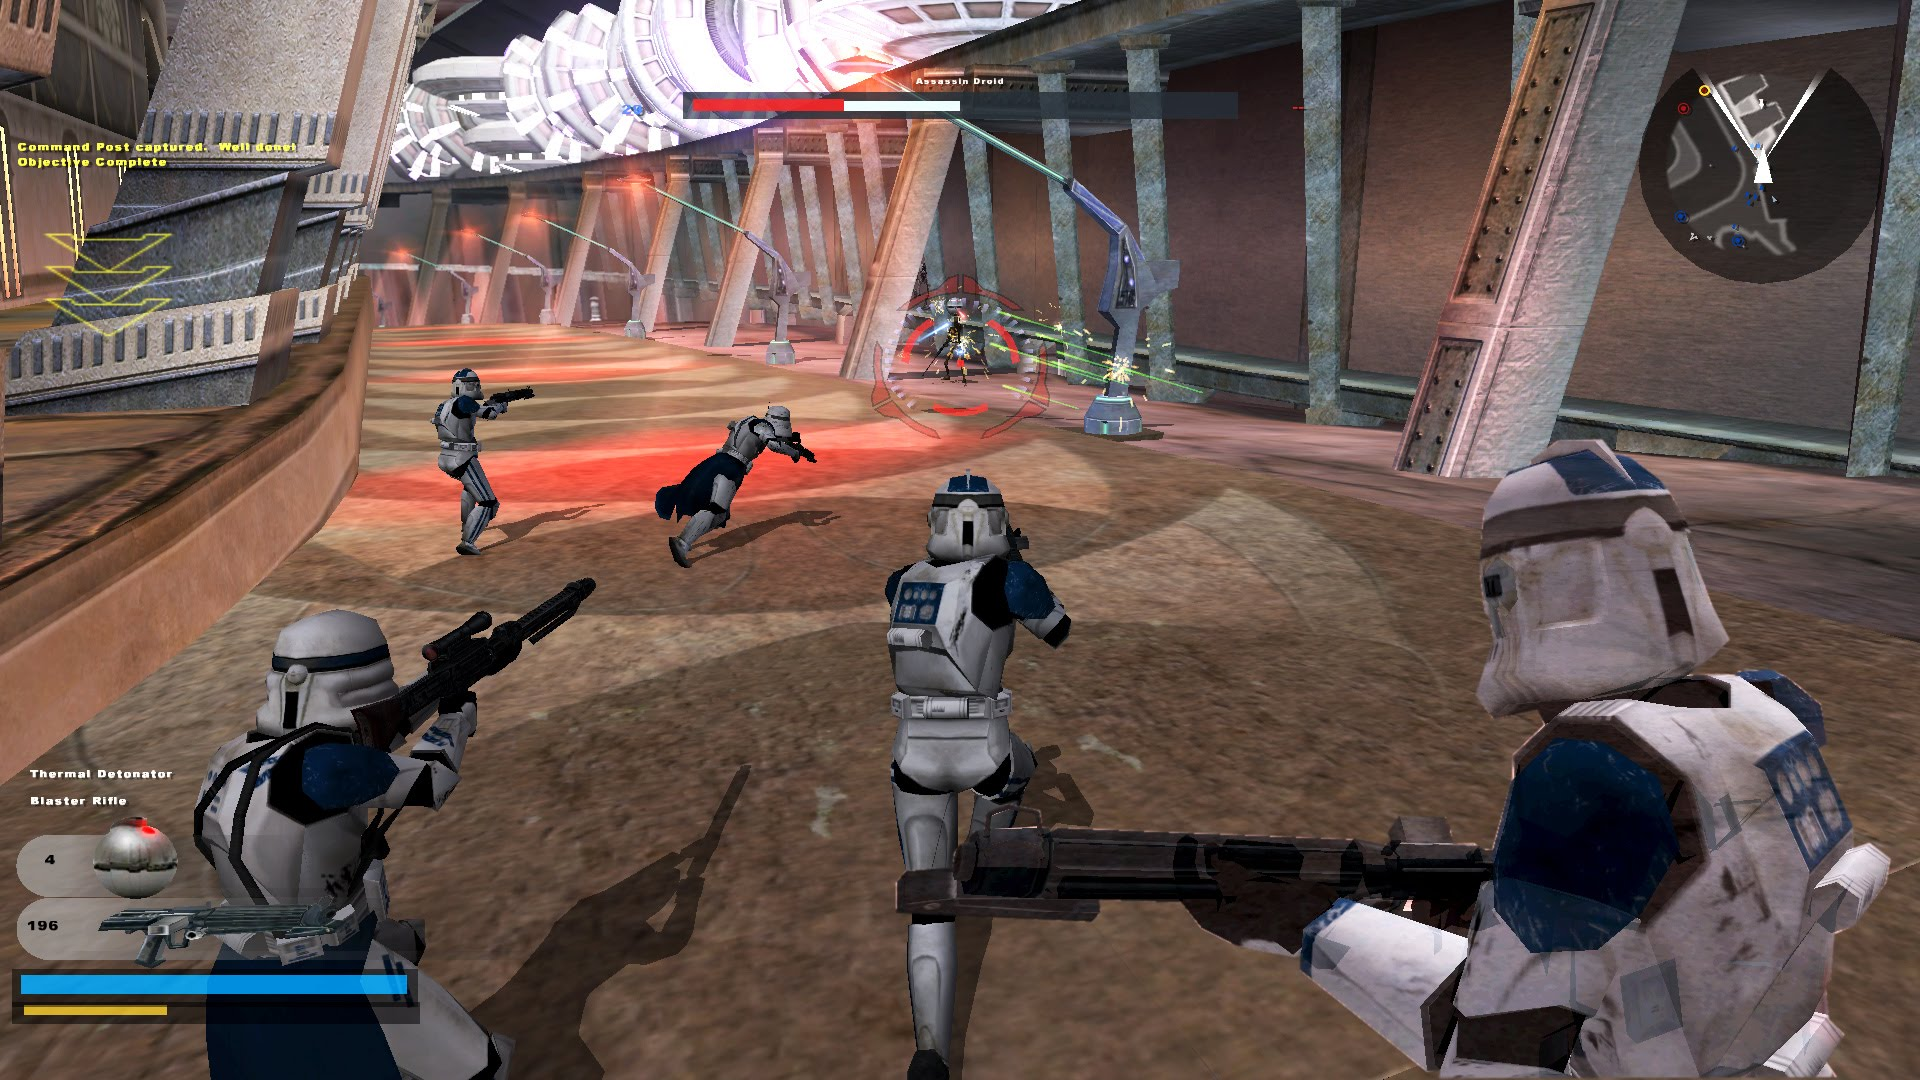 Ps2 Games All Of Them : Backlog review star wars battlefront gamingboulevard